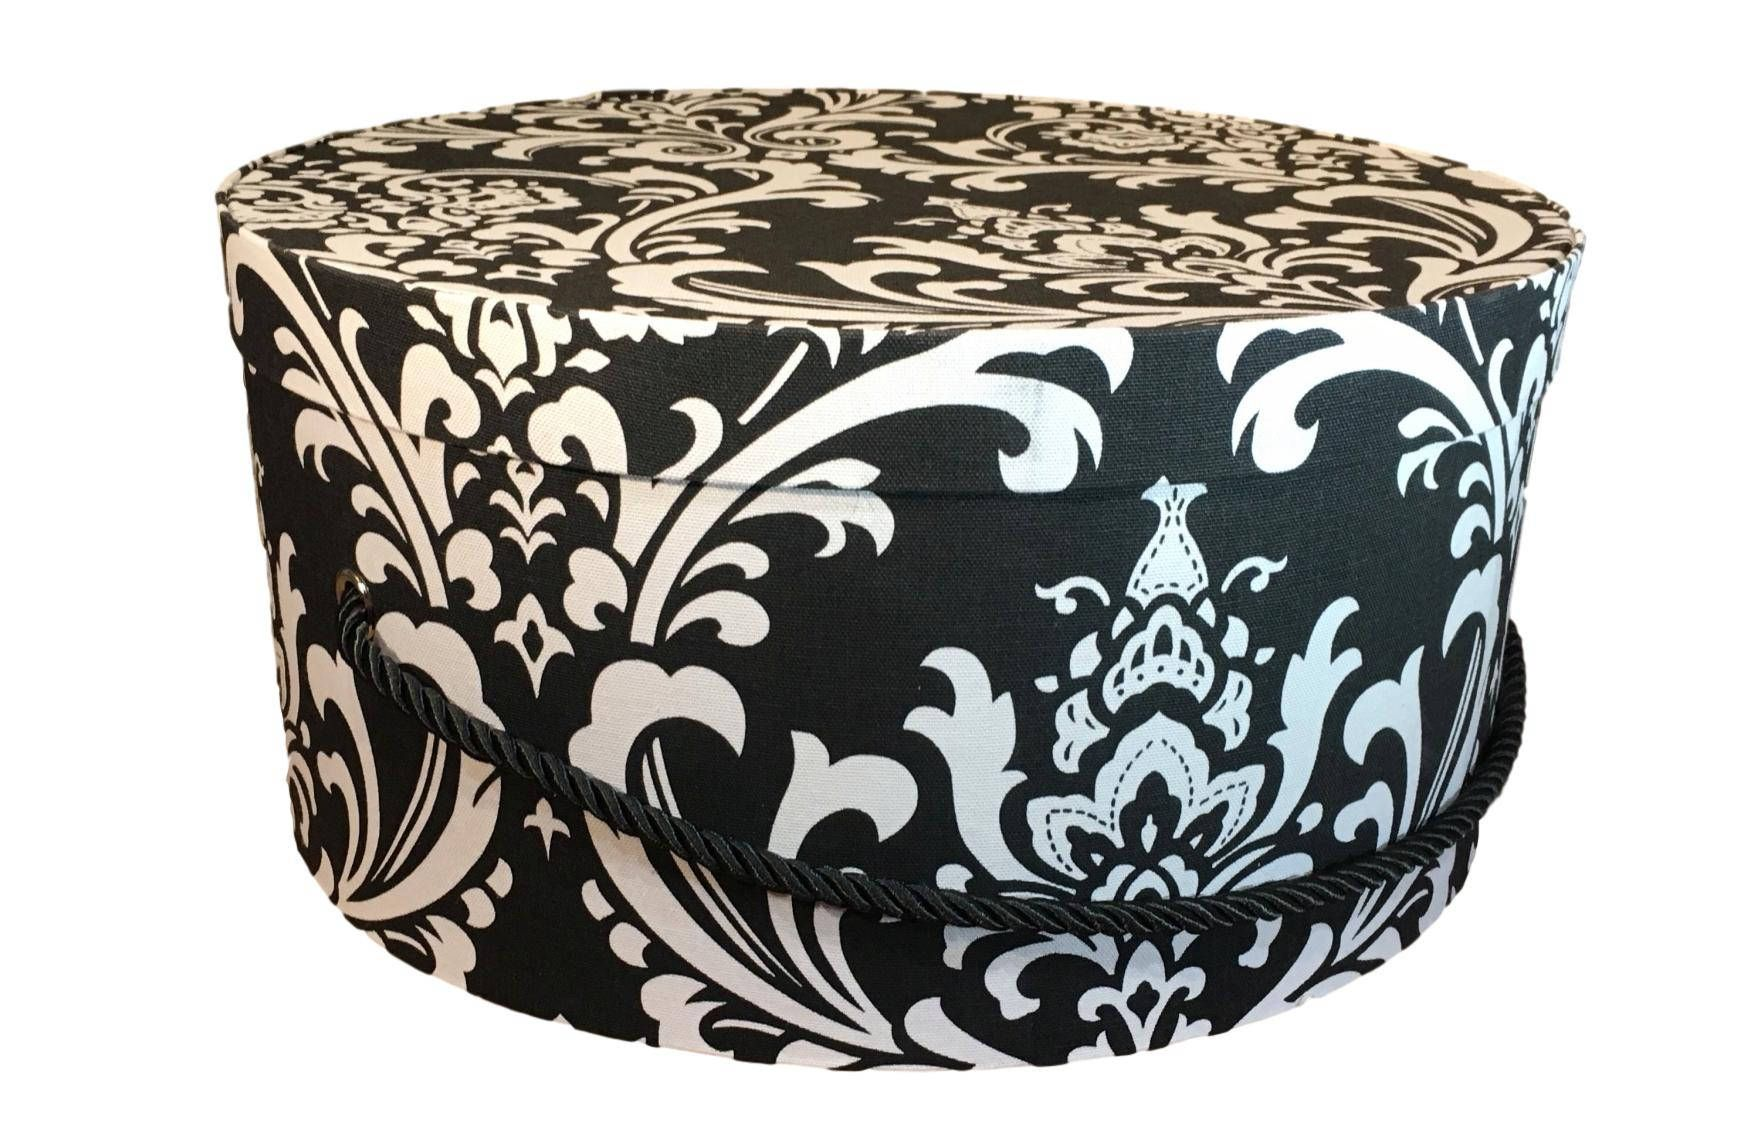 Large Hat Box In Black And White Damask Large Decorative Fabric Covered Hat Boxes Round Storage Box Keepsake Box Fabric Decor Fabric Covered Boxes Hat Boxes